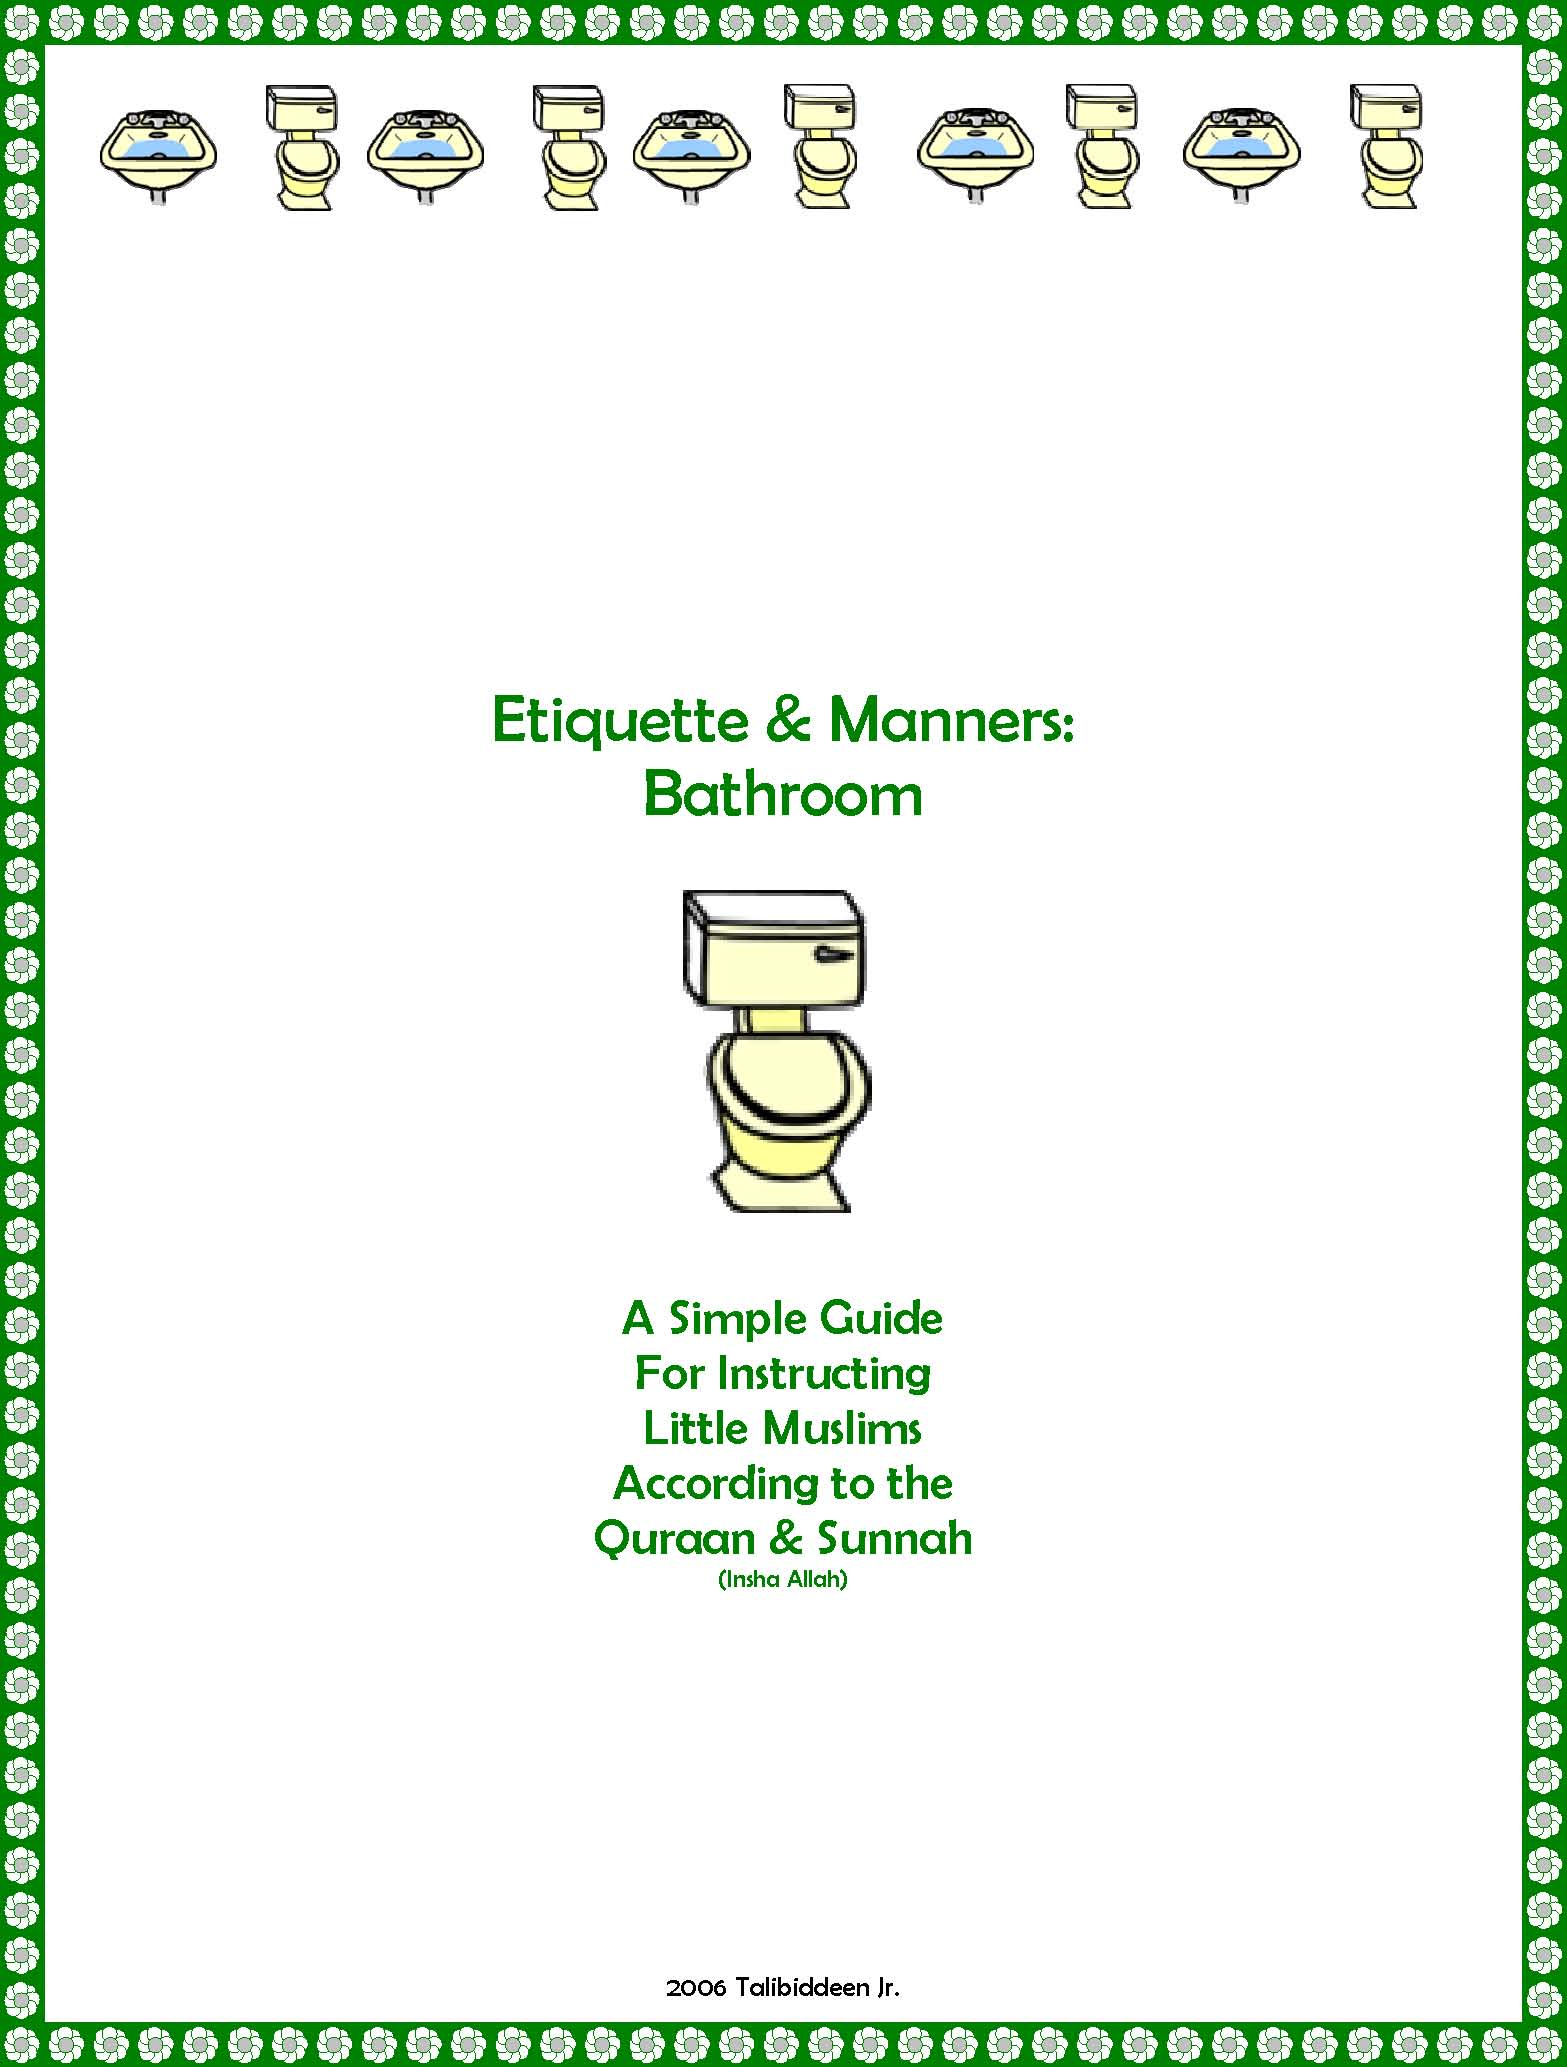 Etiquette manners for Bathroom edicate